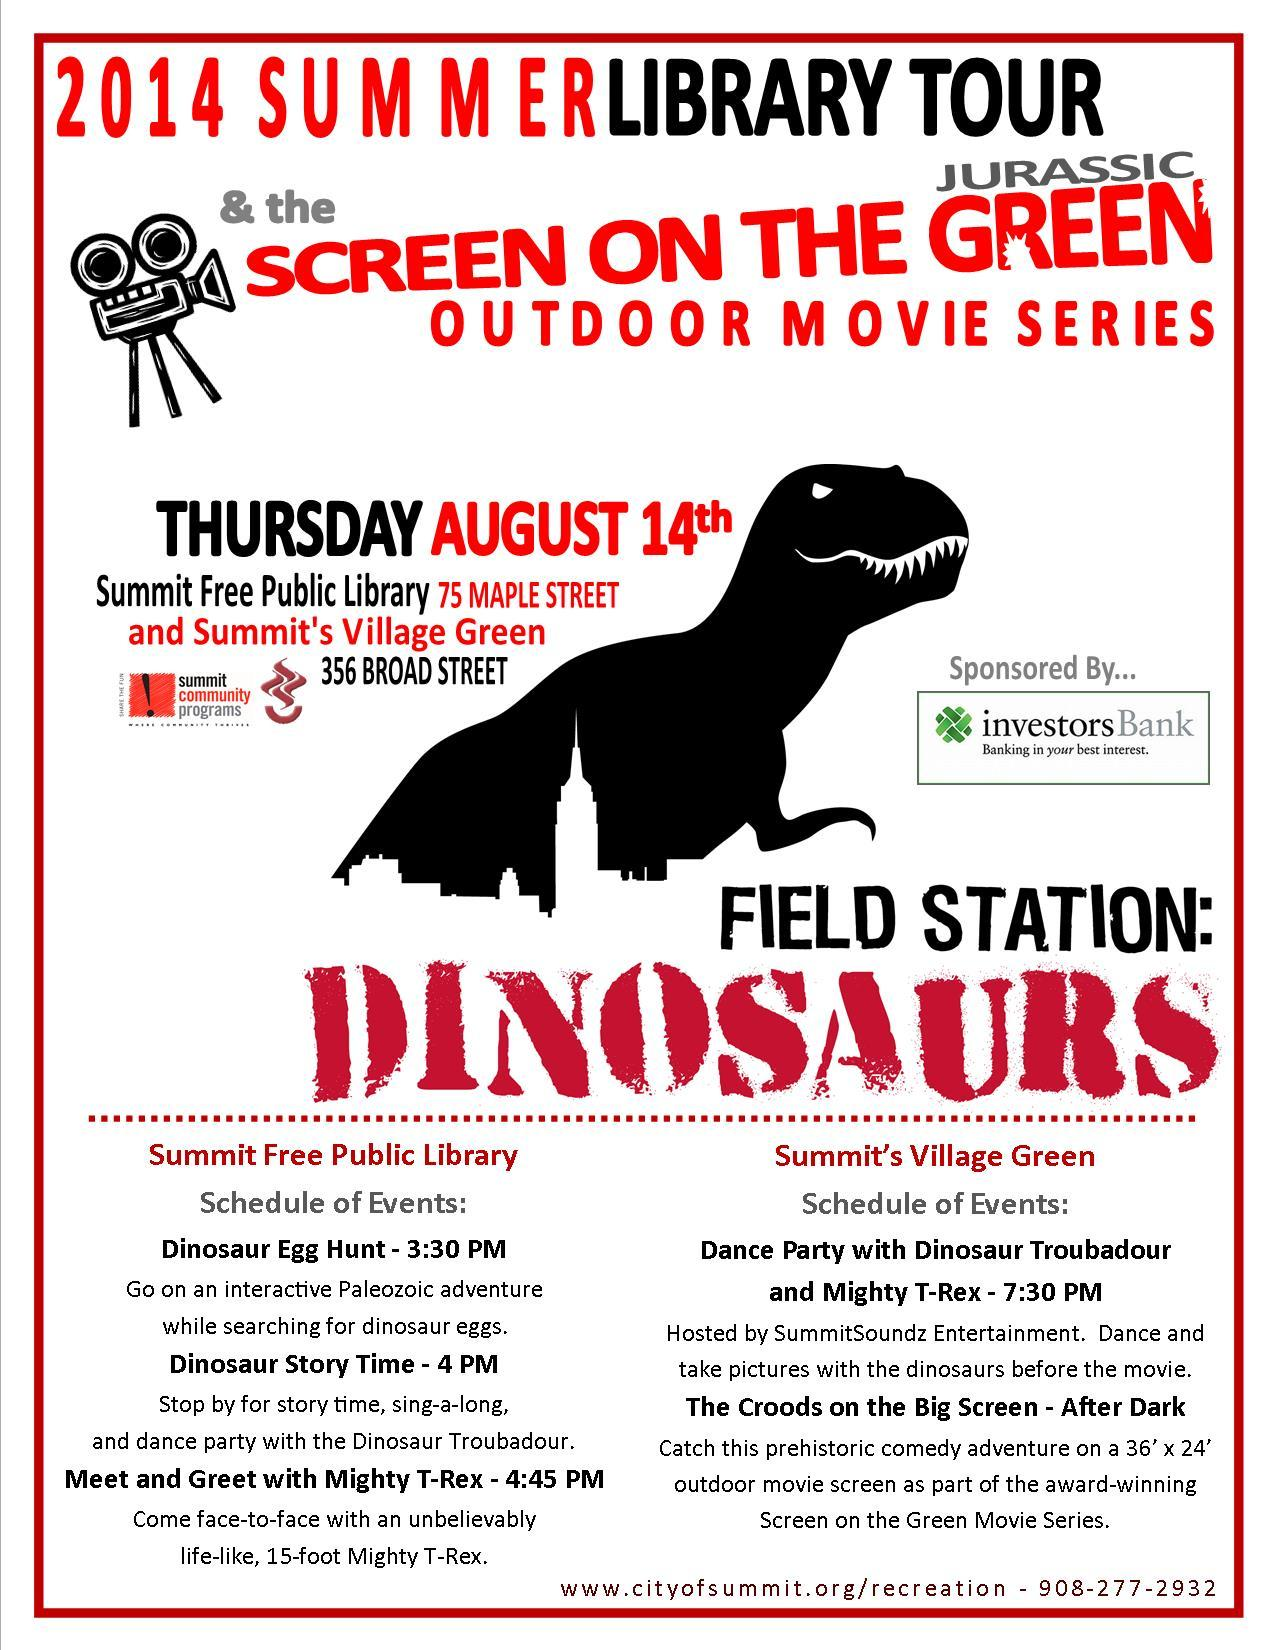 d83c0e59a8d079c3ca2f_Field_Station_Dinosaur_Summer_Library_Tour_and_Jurassic_Green.jpg